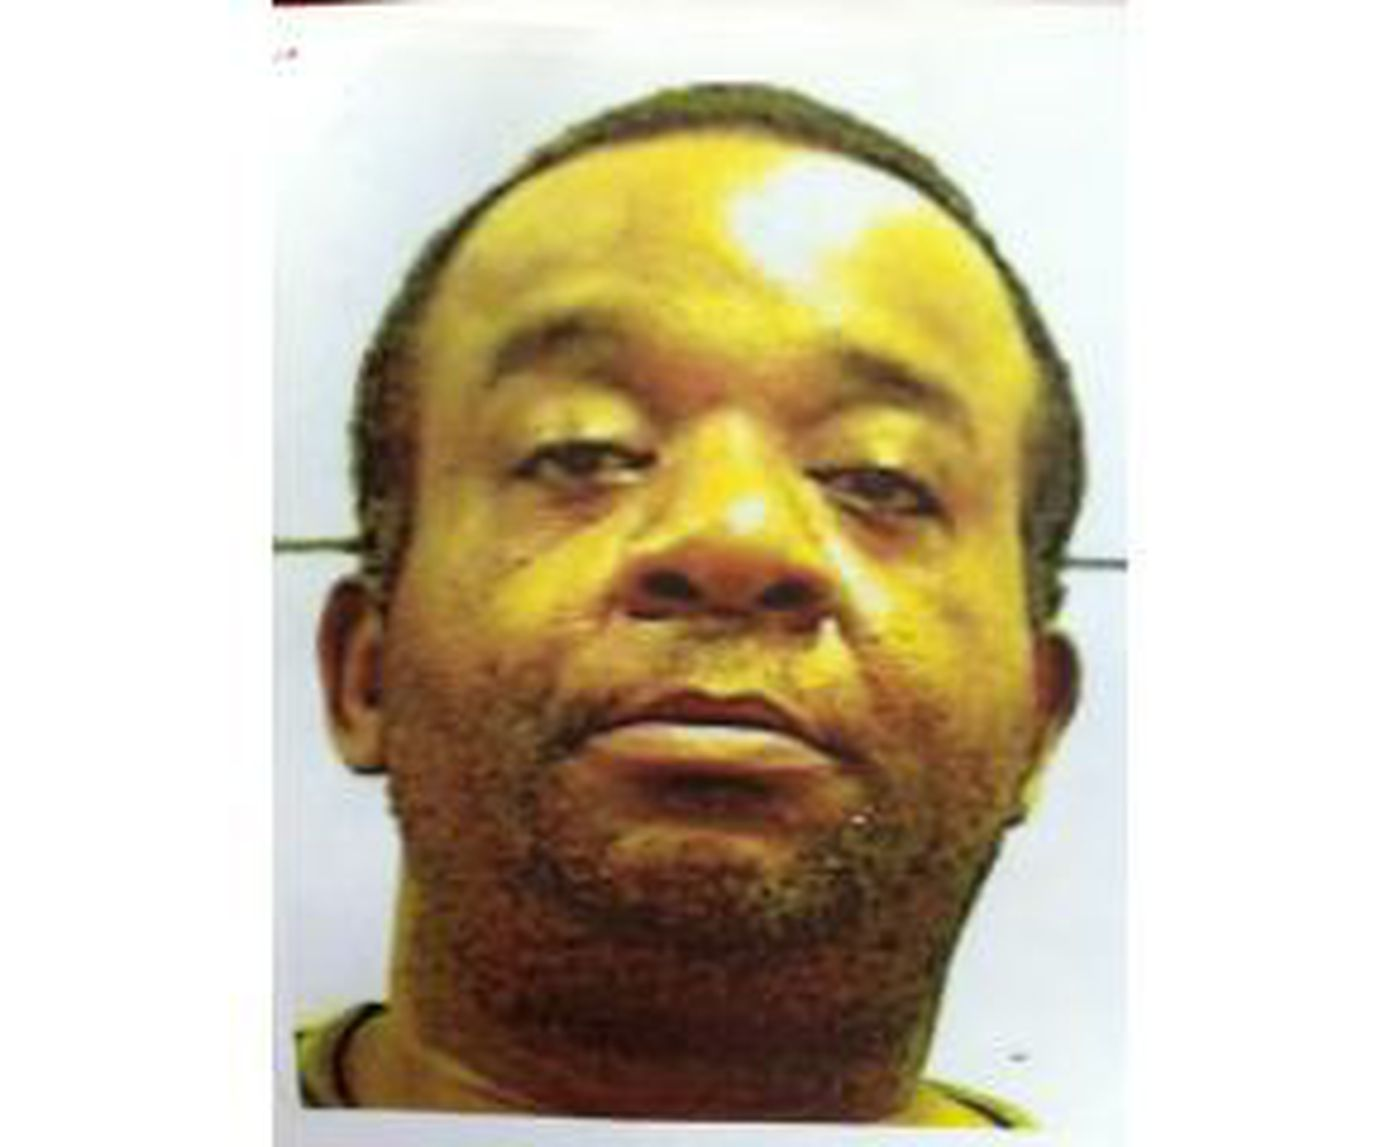 Man charged with 1st degree in quadruple homicide